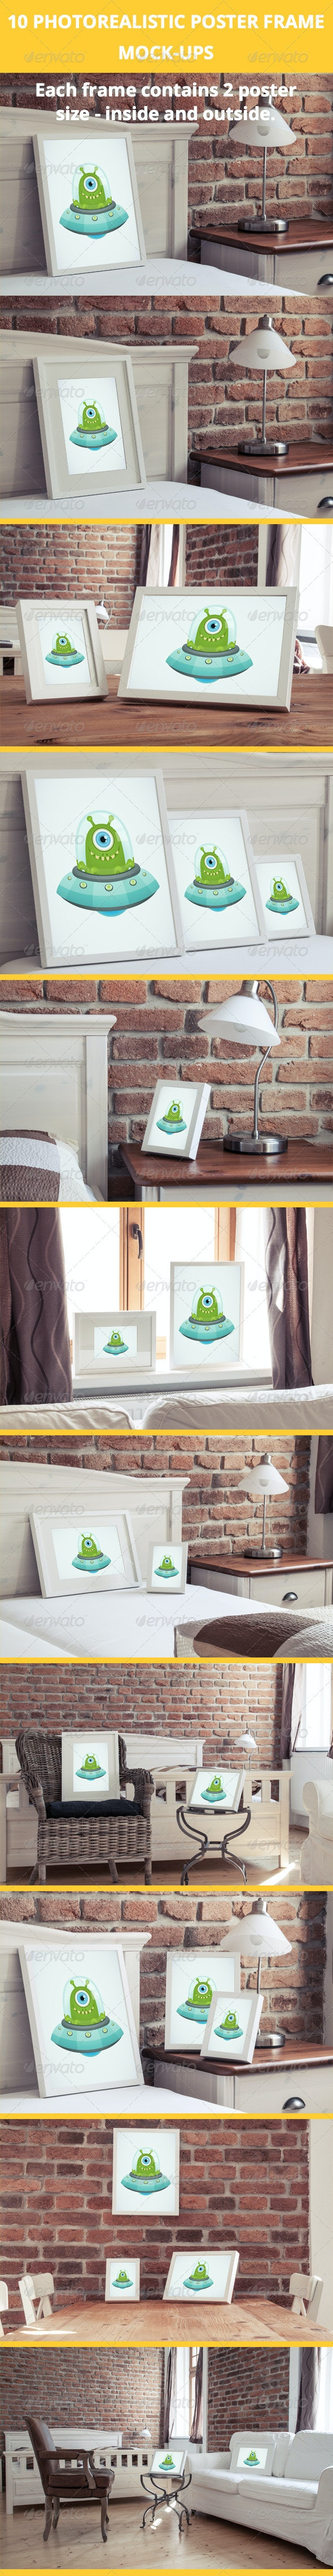 10 Poster Frame Mock-Ups in luxury interior - Posters Print